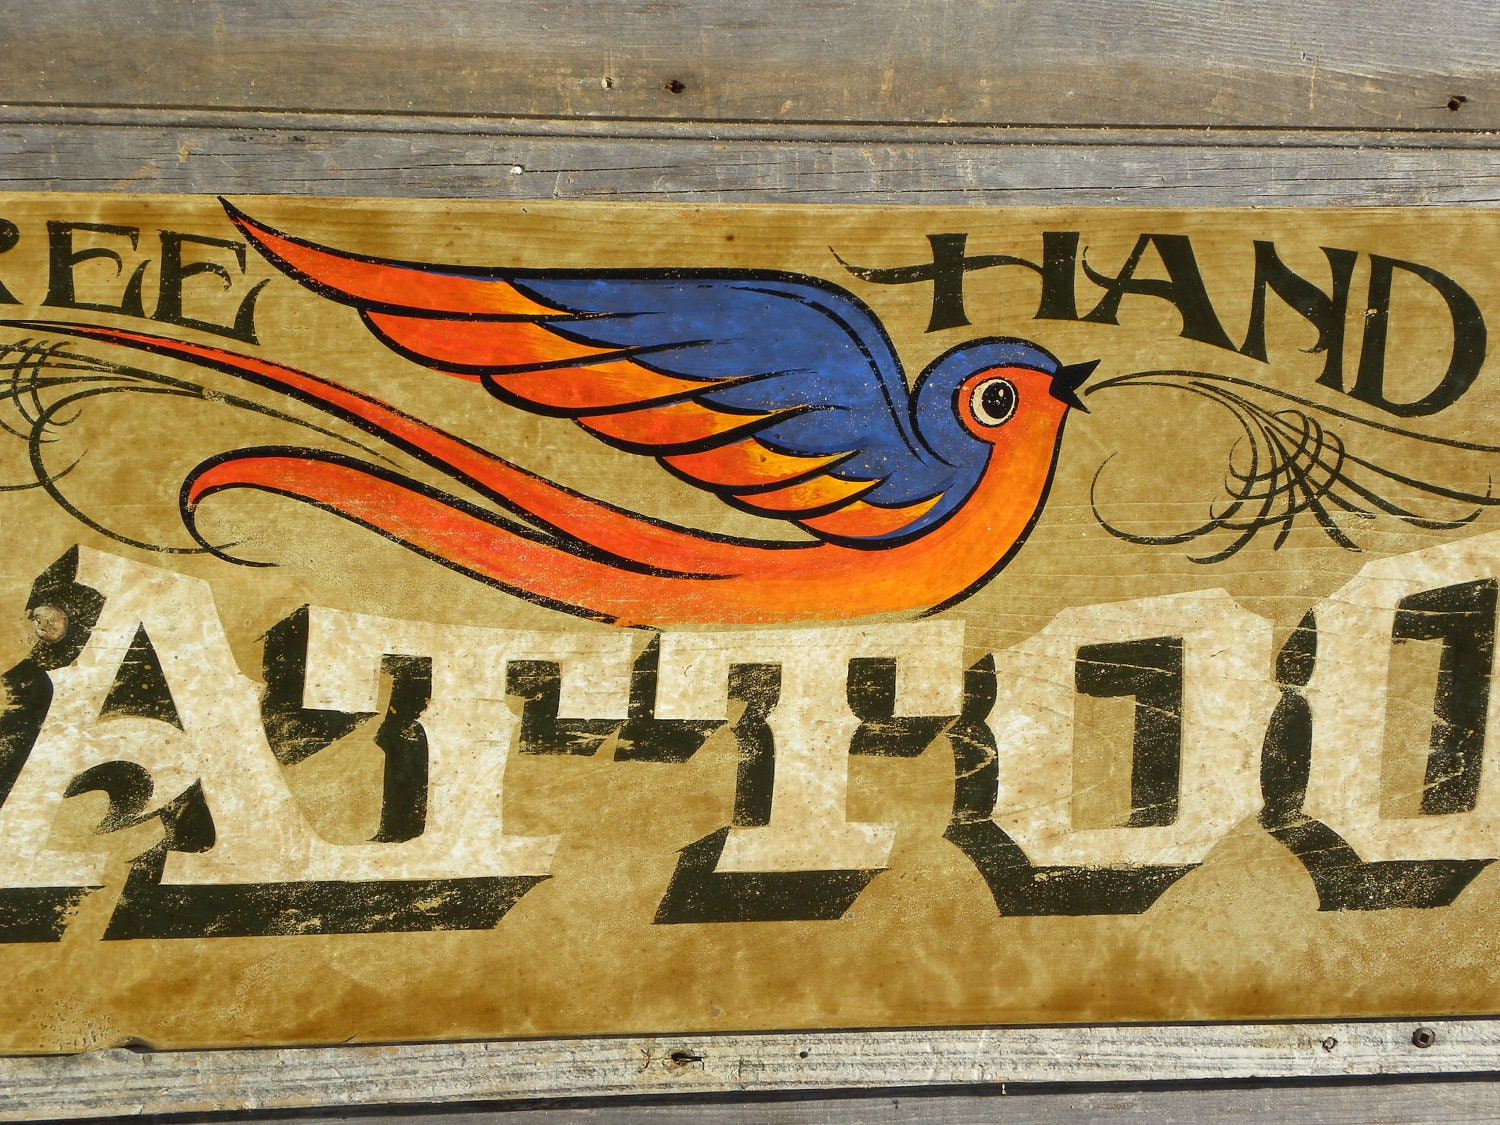 Tattoo Sign Hand Painted Original Art Wooden Sign Vintage. Leo Signs Of Stroke. Slate House Signs. Autonomic Neuropathy Signs. Bunt Signs. Candidiasis Signs. Spaceship Signs Of Stroke. Atherosclerosis Progression Signs. Hospital Department Signs